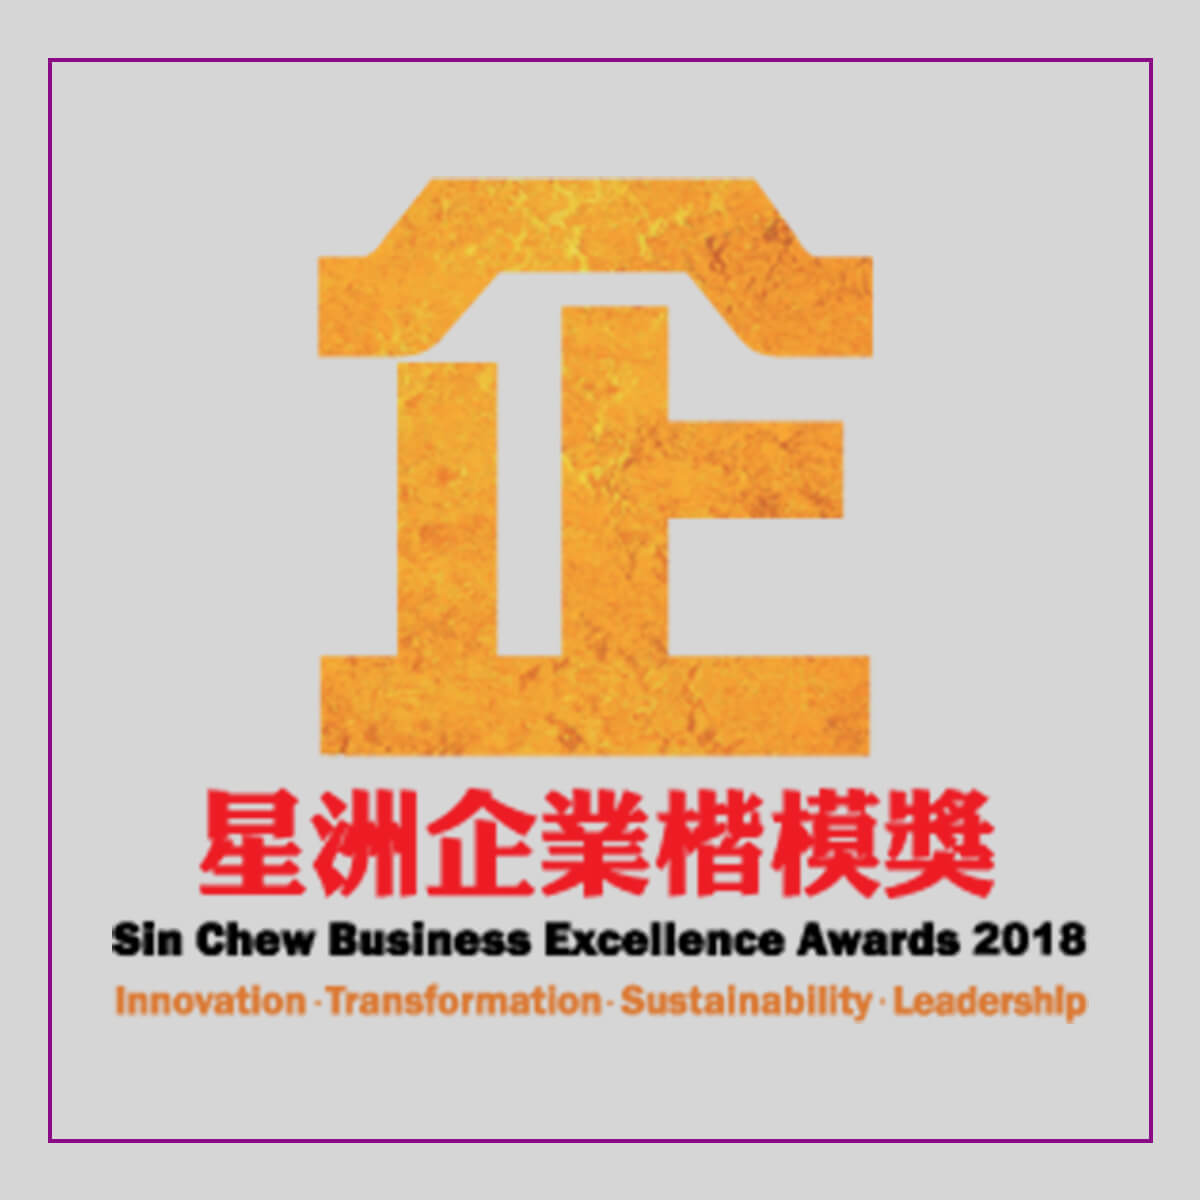 THKD Awards Sin Chew Business Excellence Awards 2018